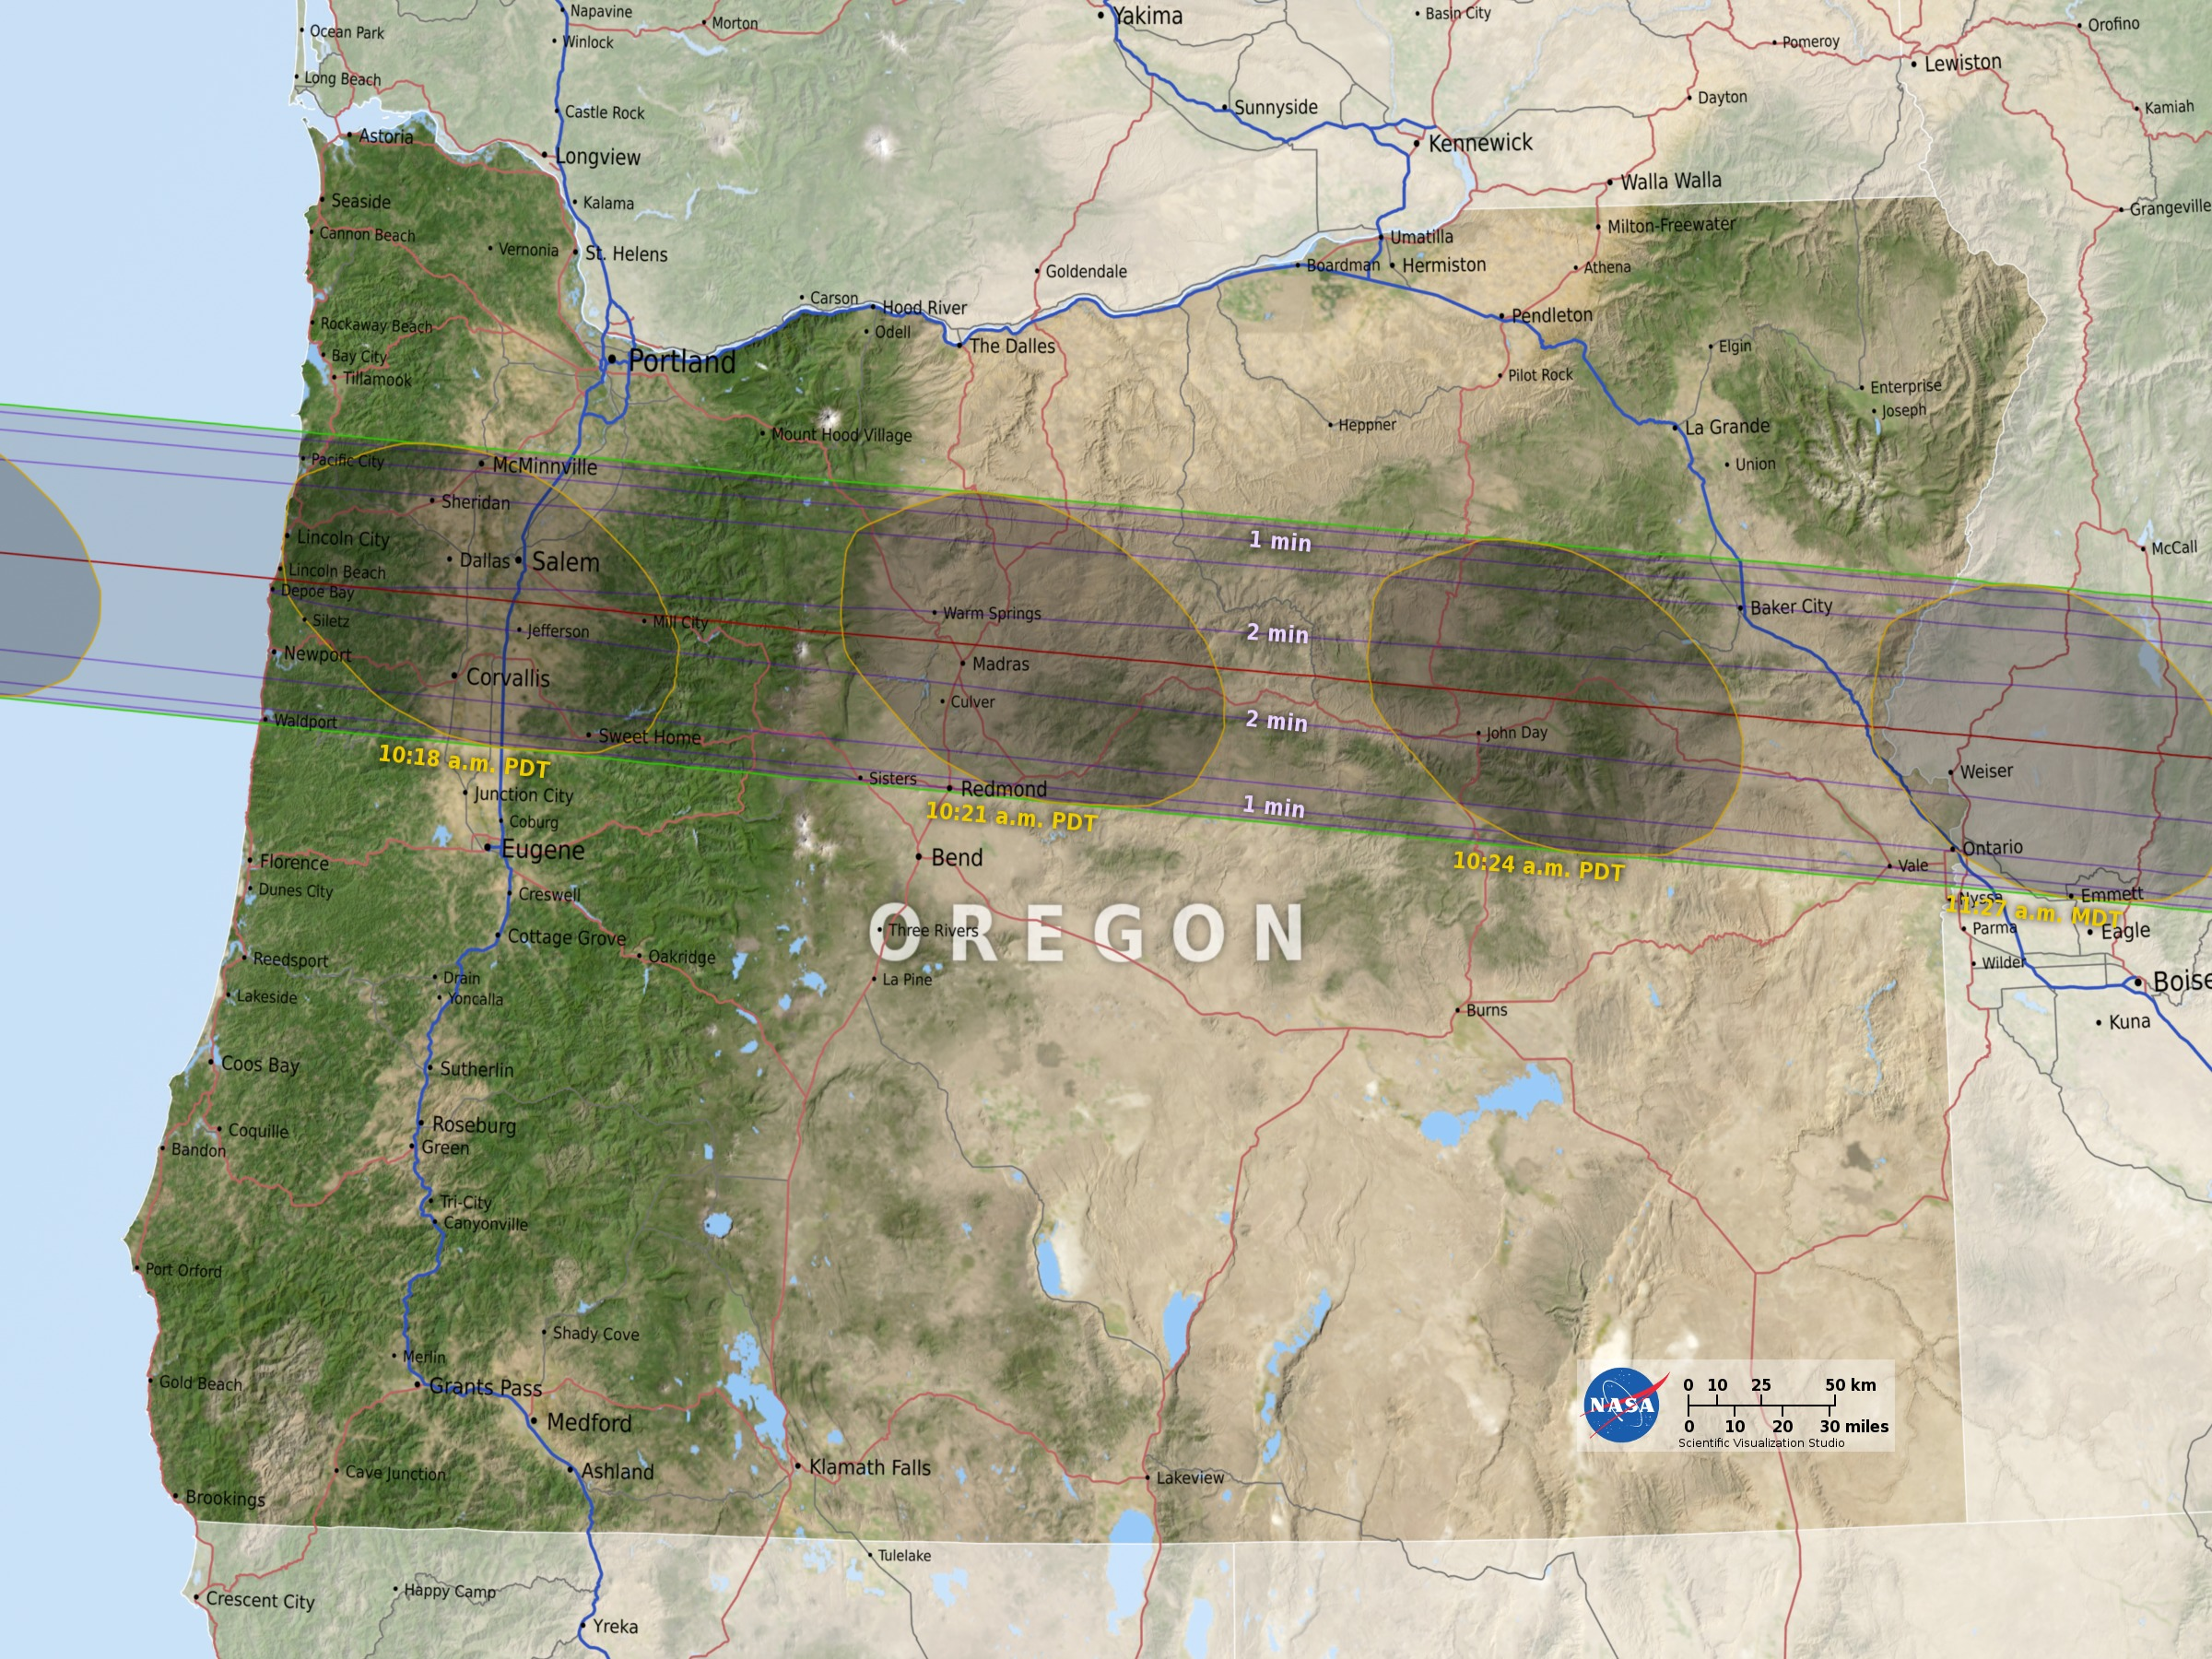 SVS Eclipse State Maps - Map of the state of oregon